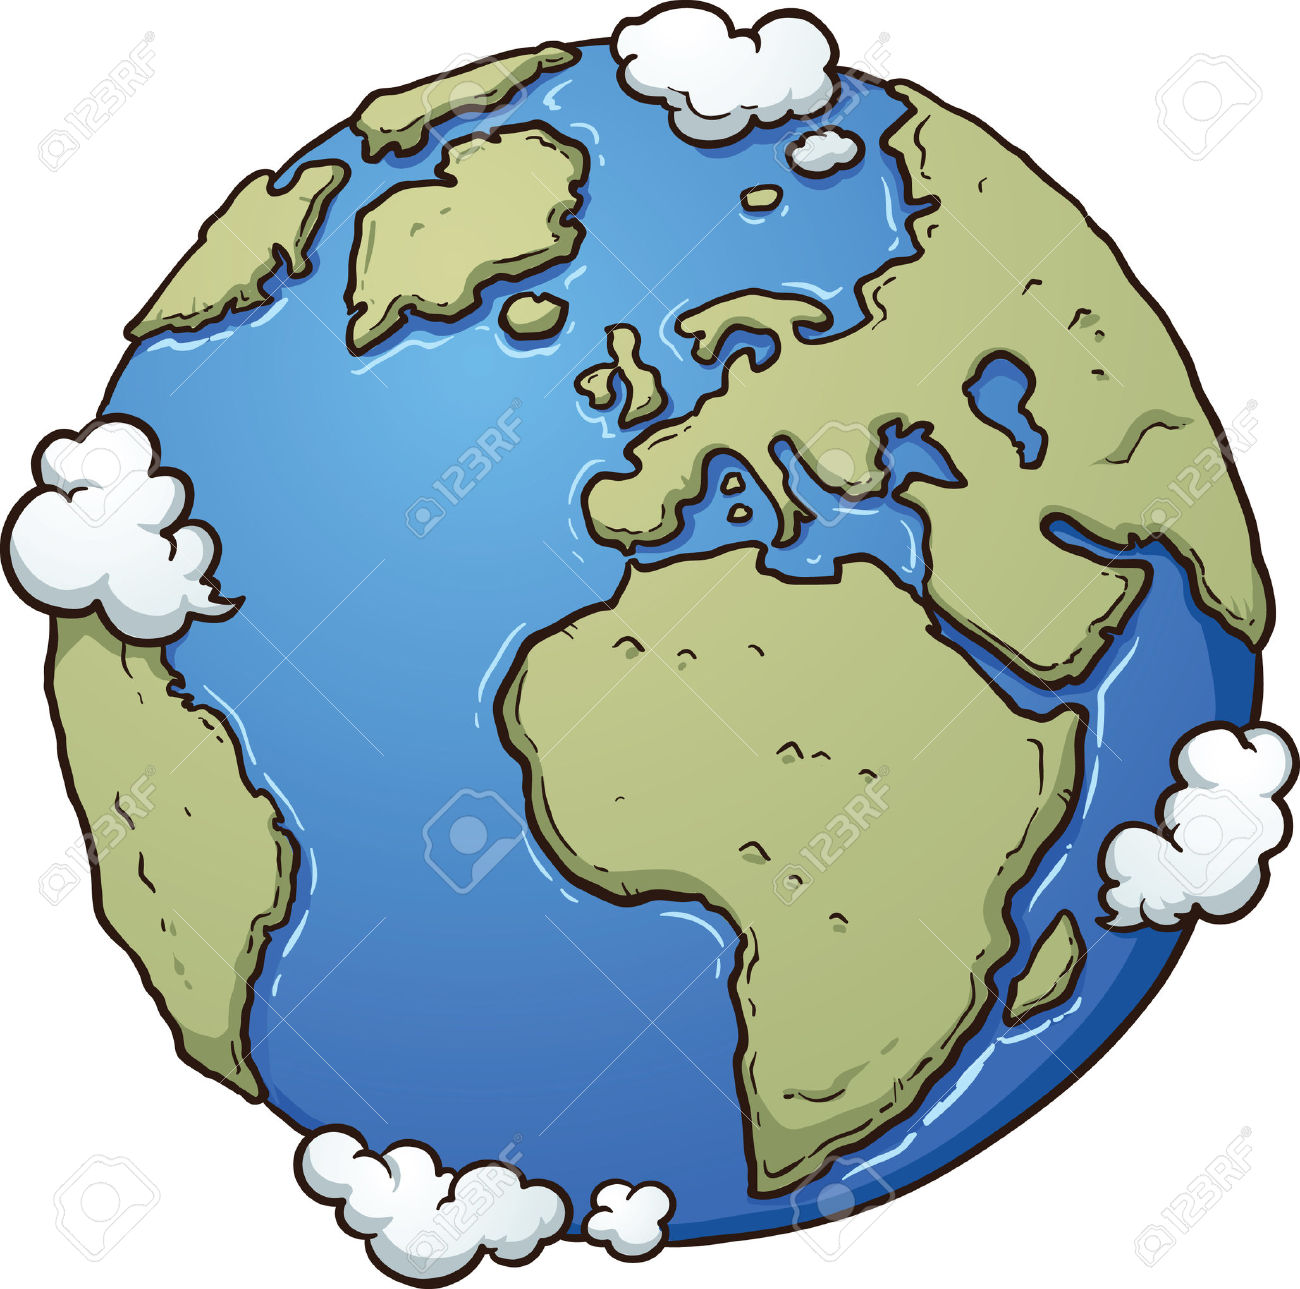 The earth's atmosphere clipart #18